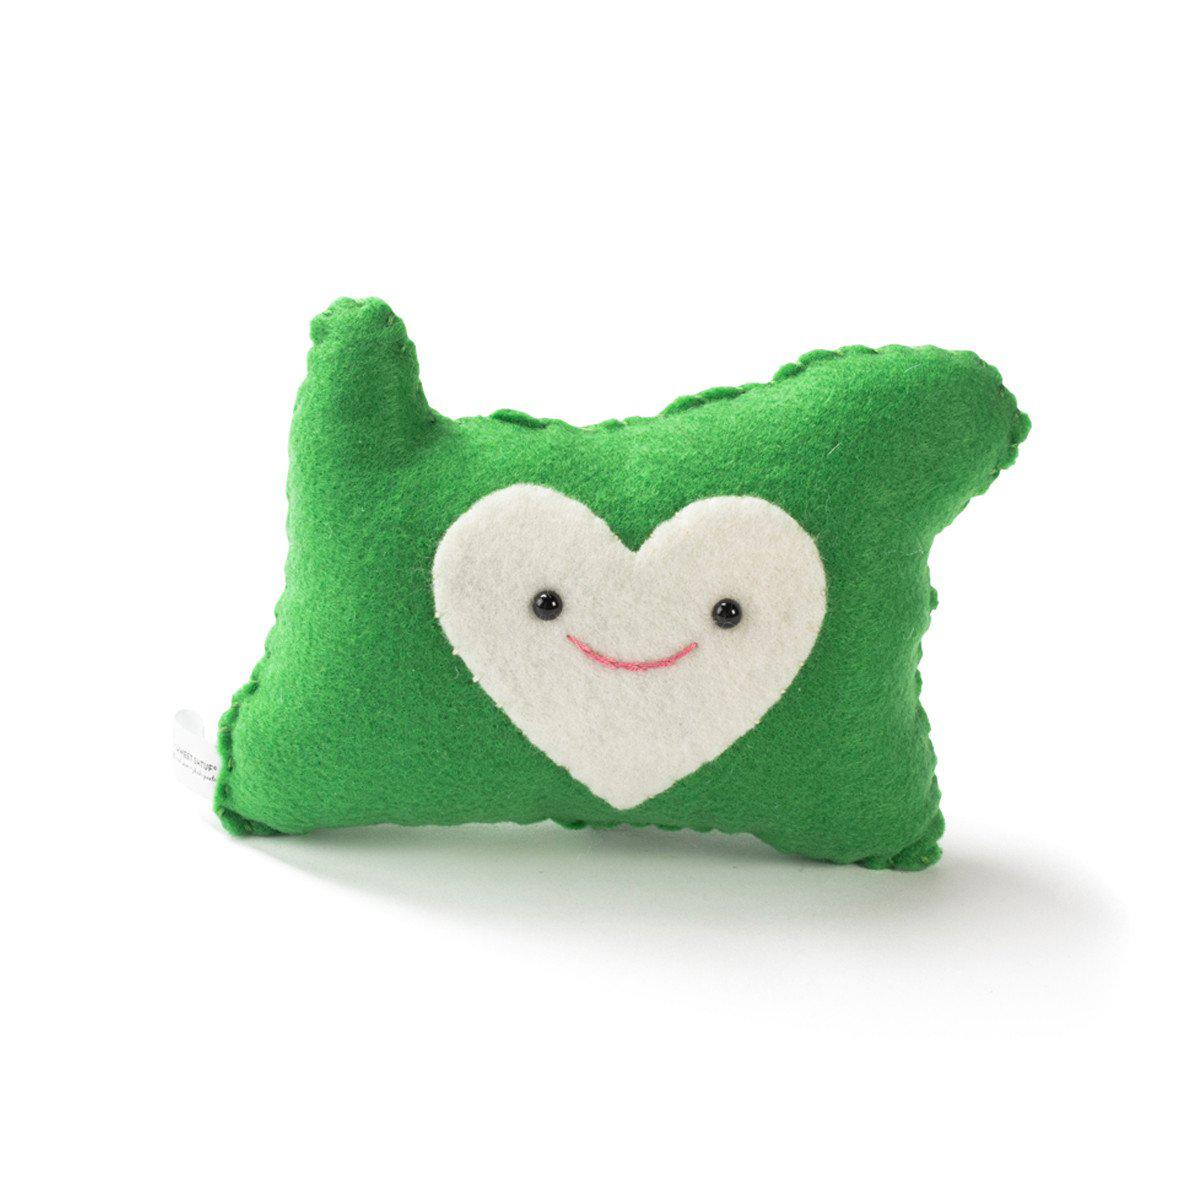 Heart Oregon Plush